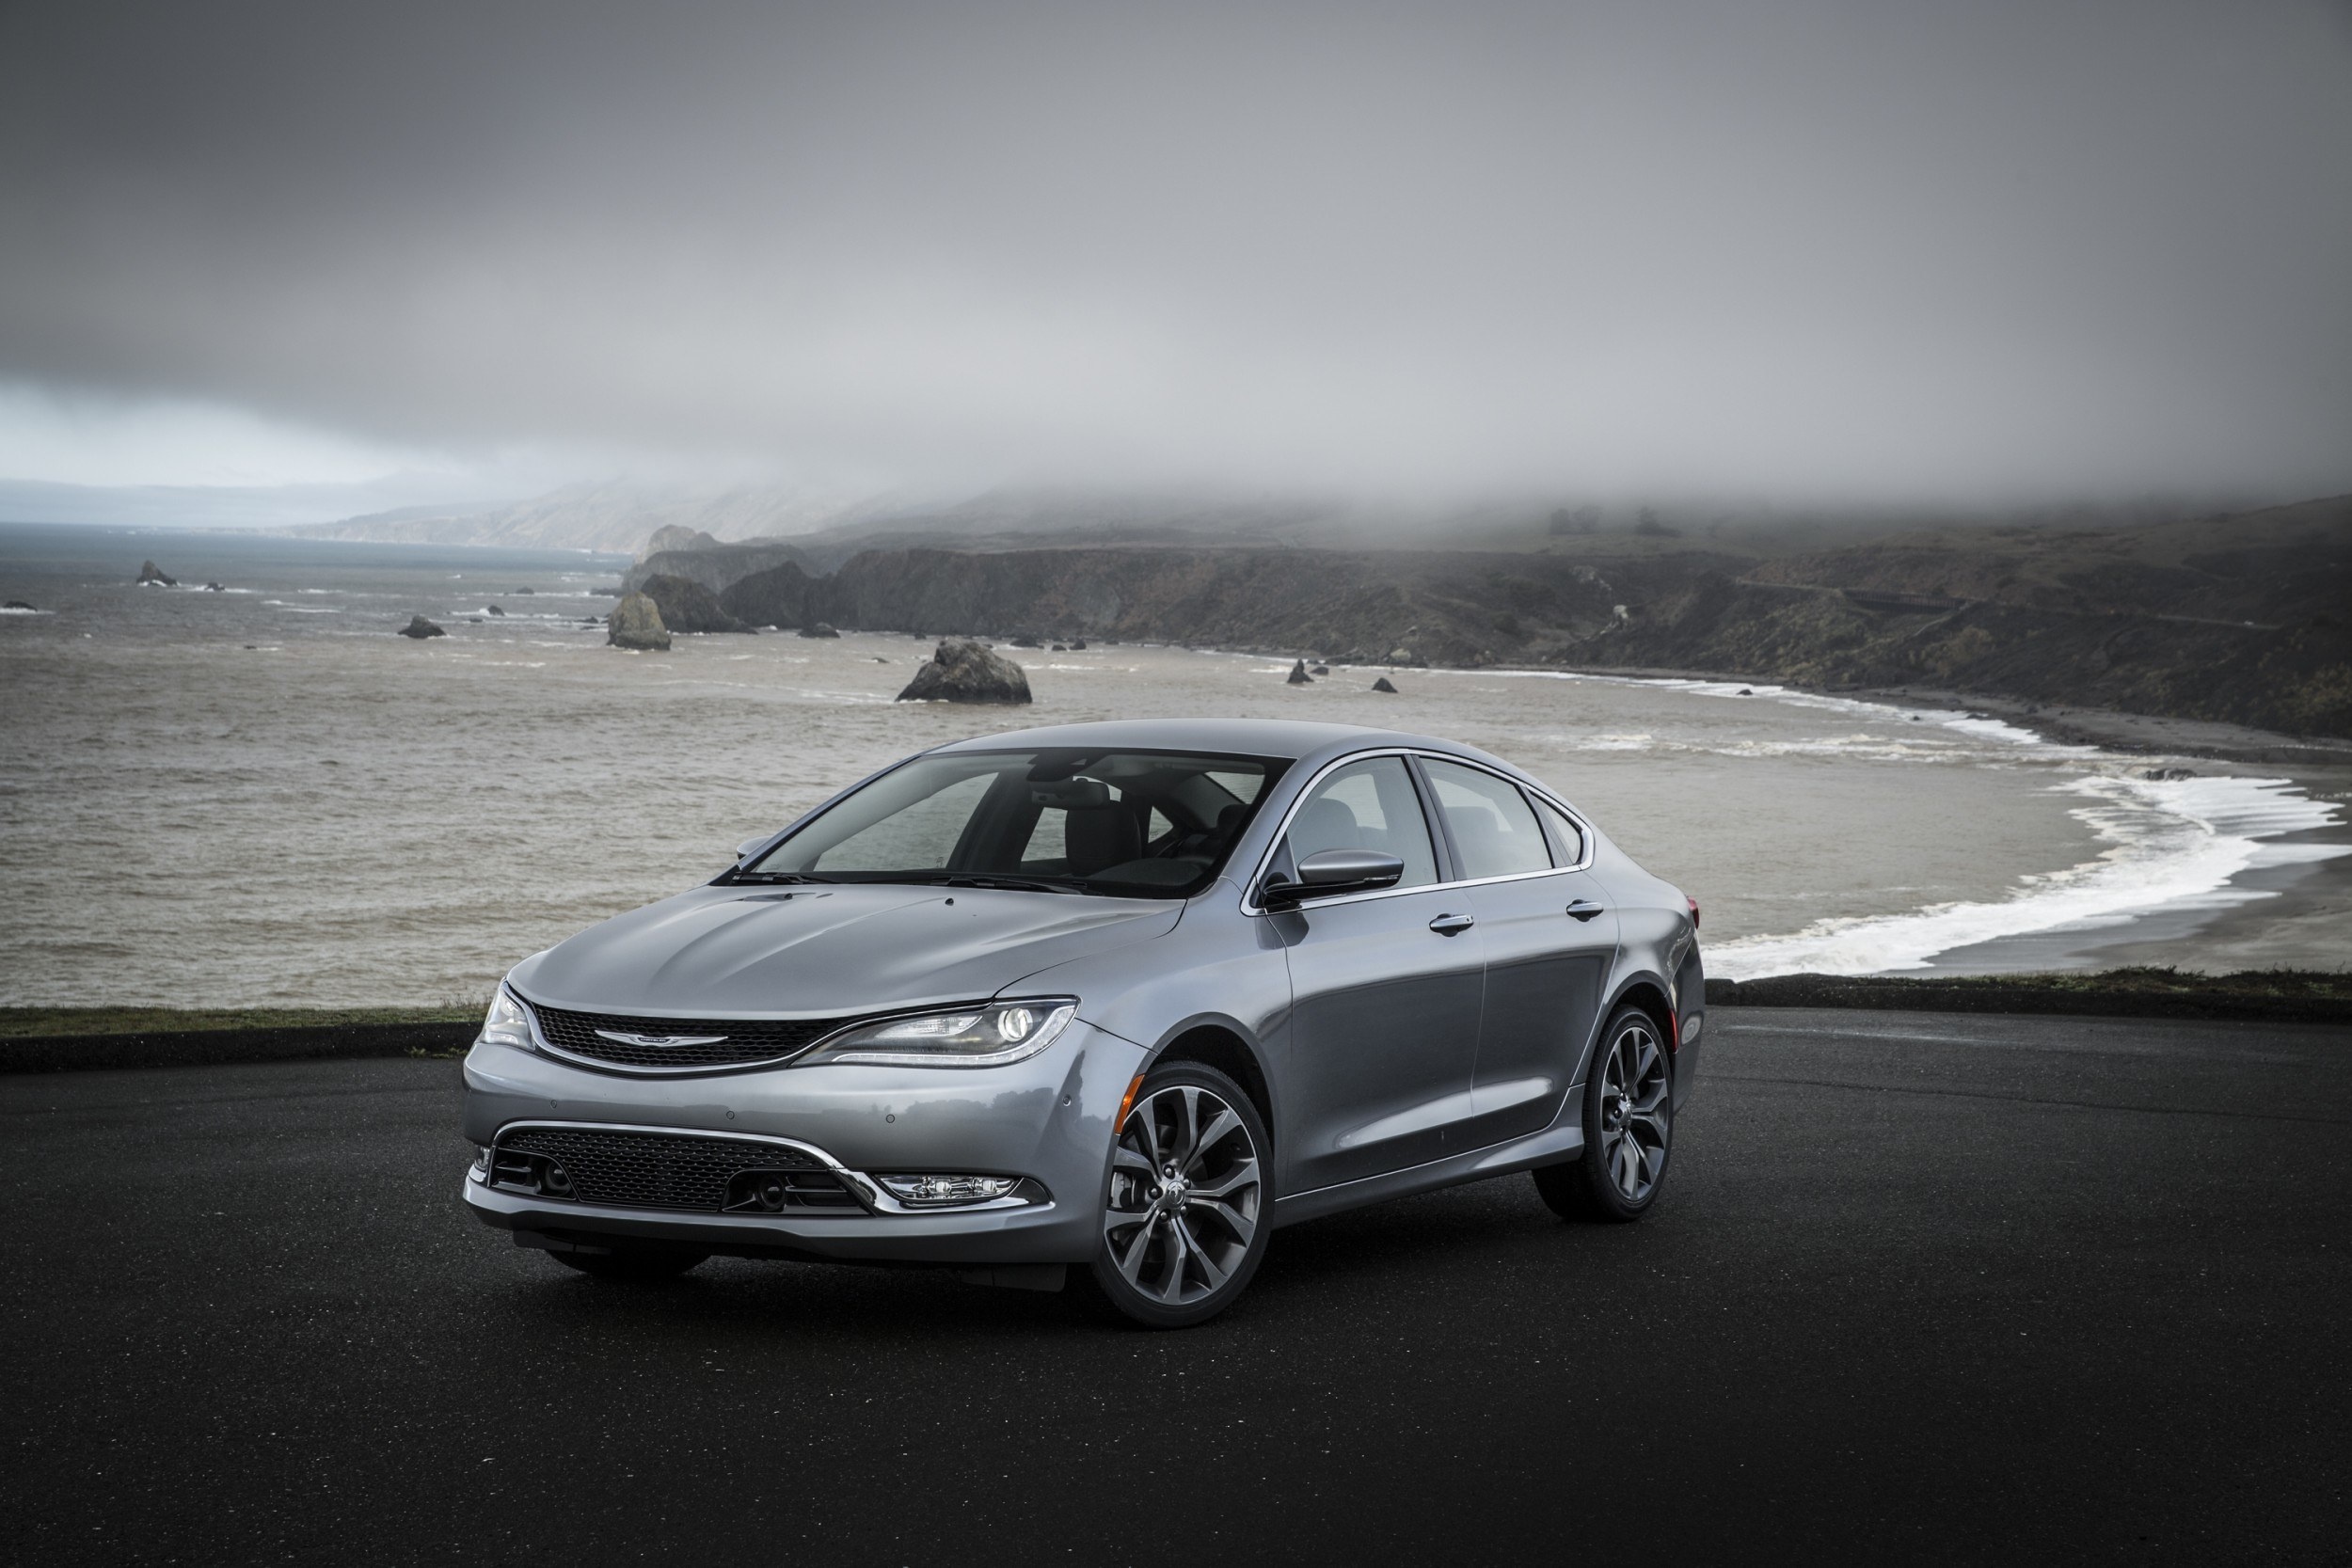 msrp autoweek chrysler left car article notes review rear reviews